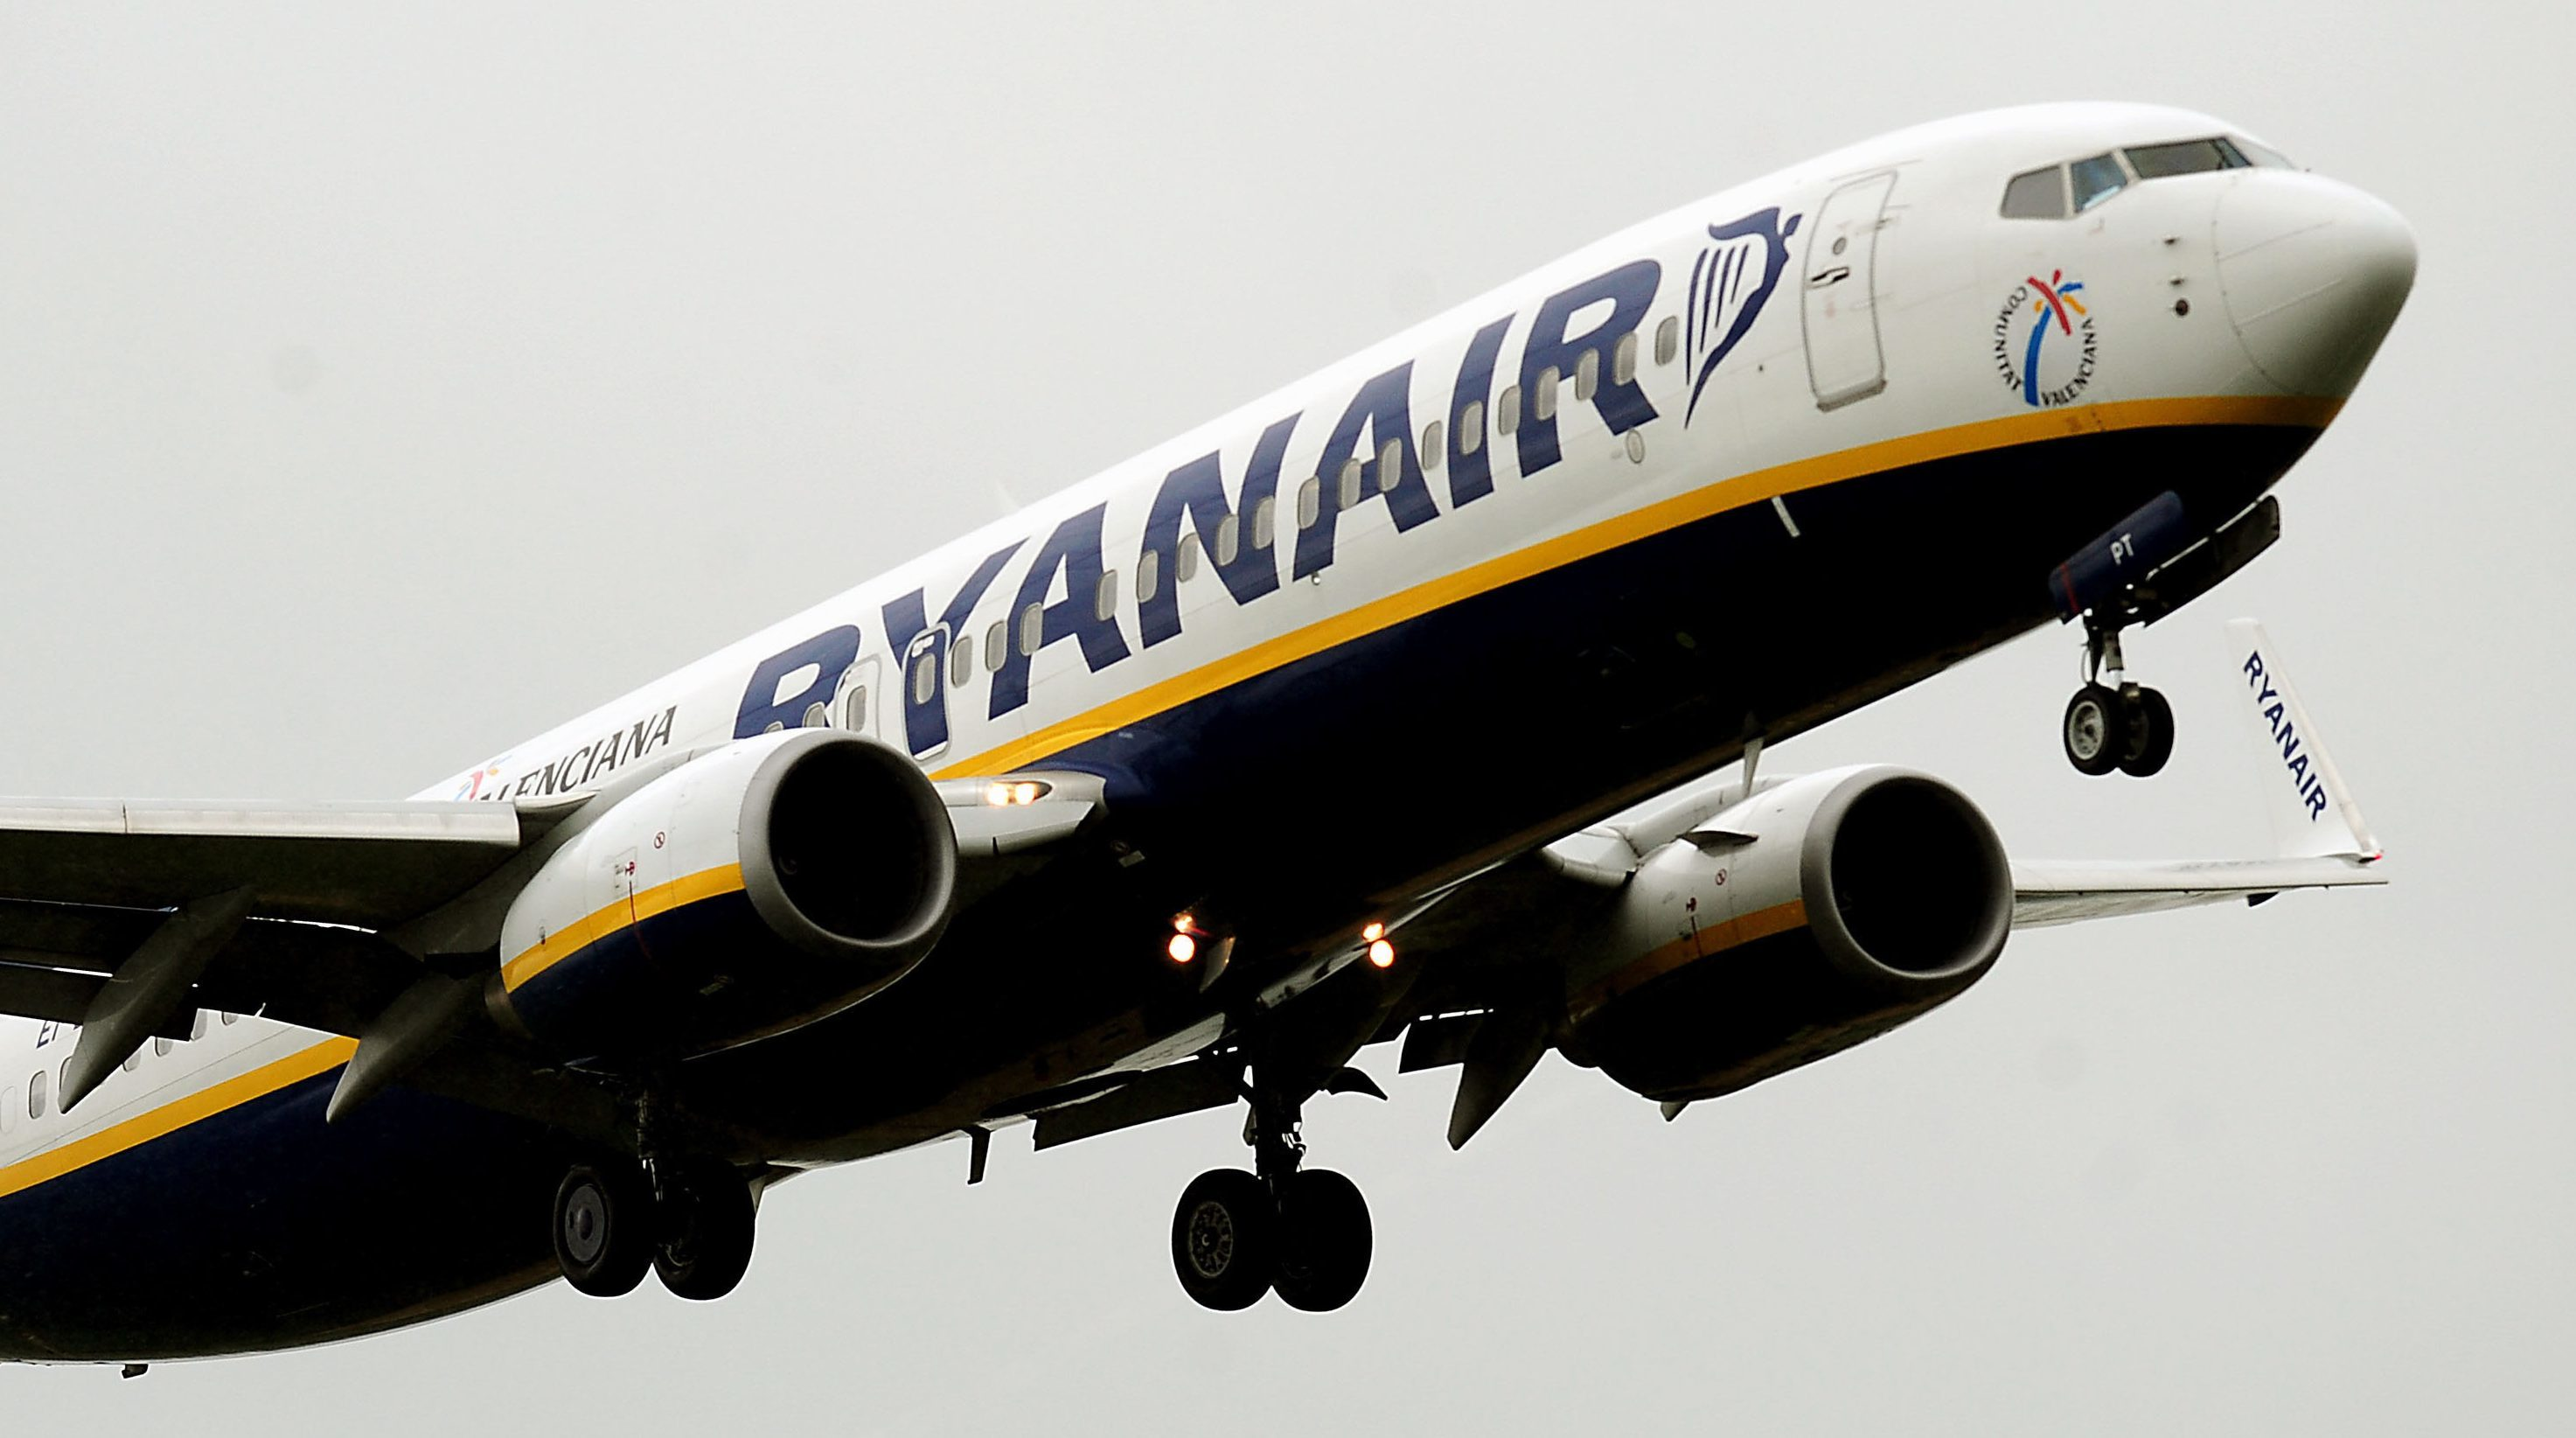 Ryanair has been slashing fares to boost demand.